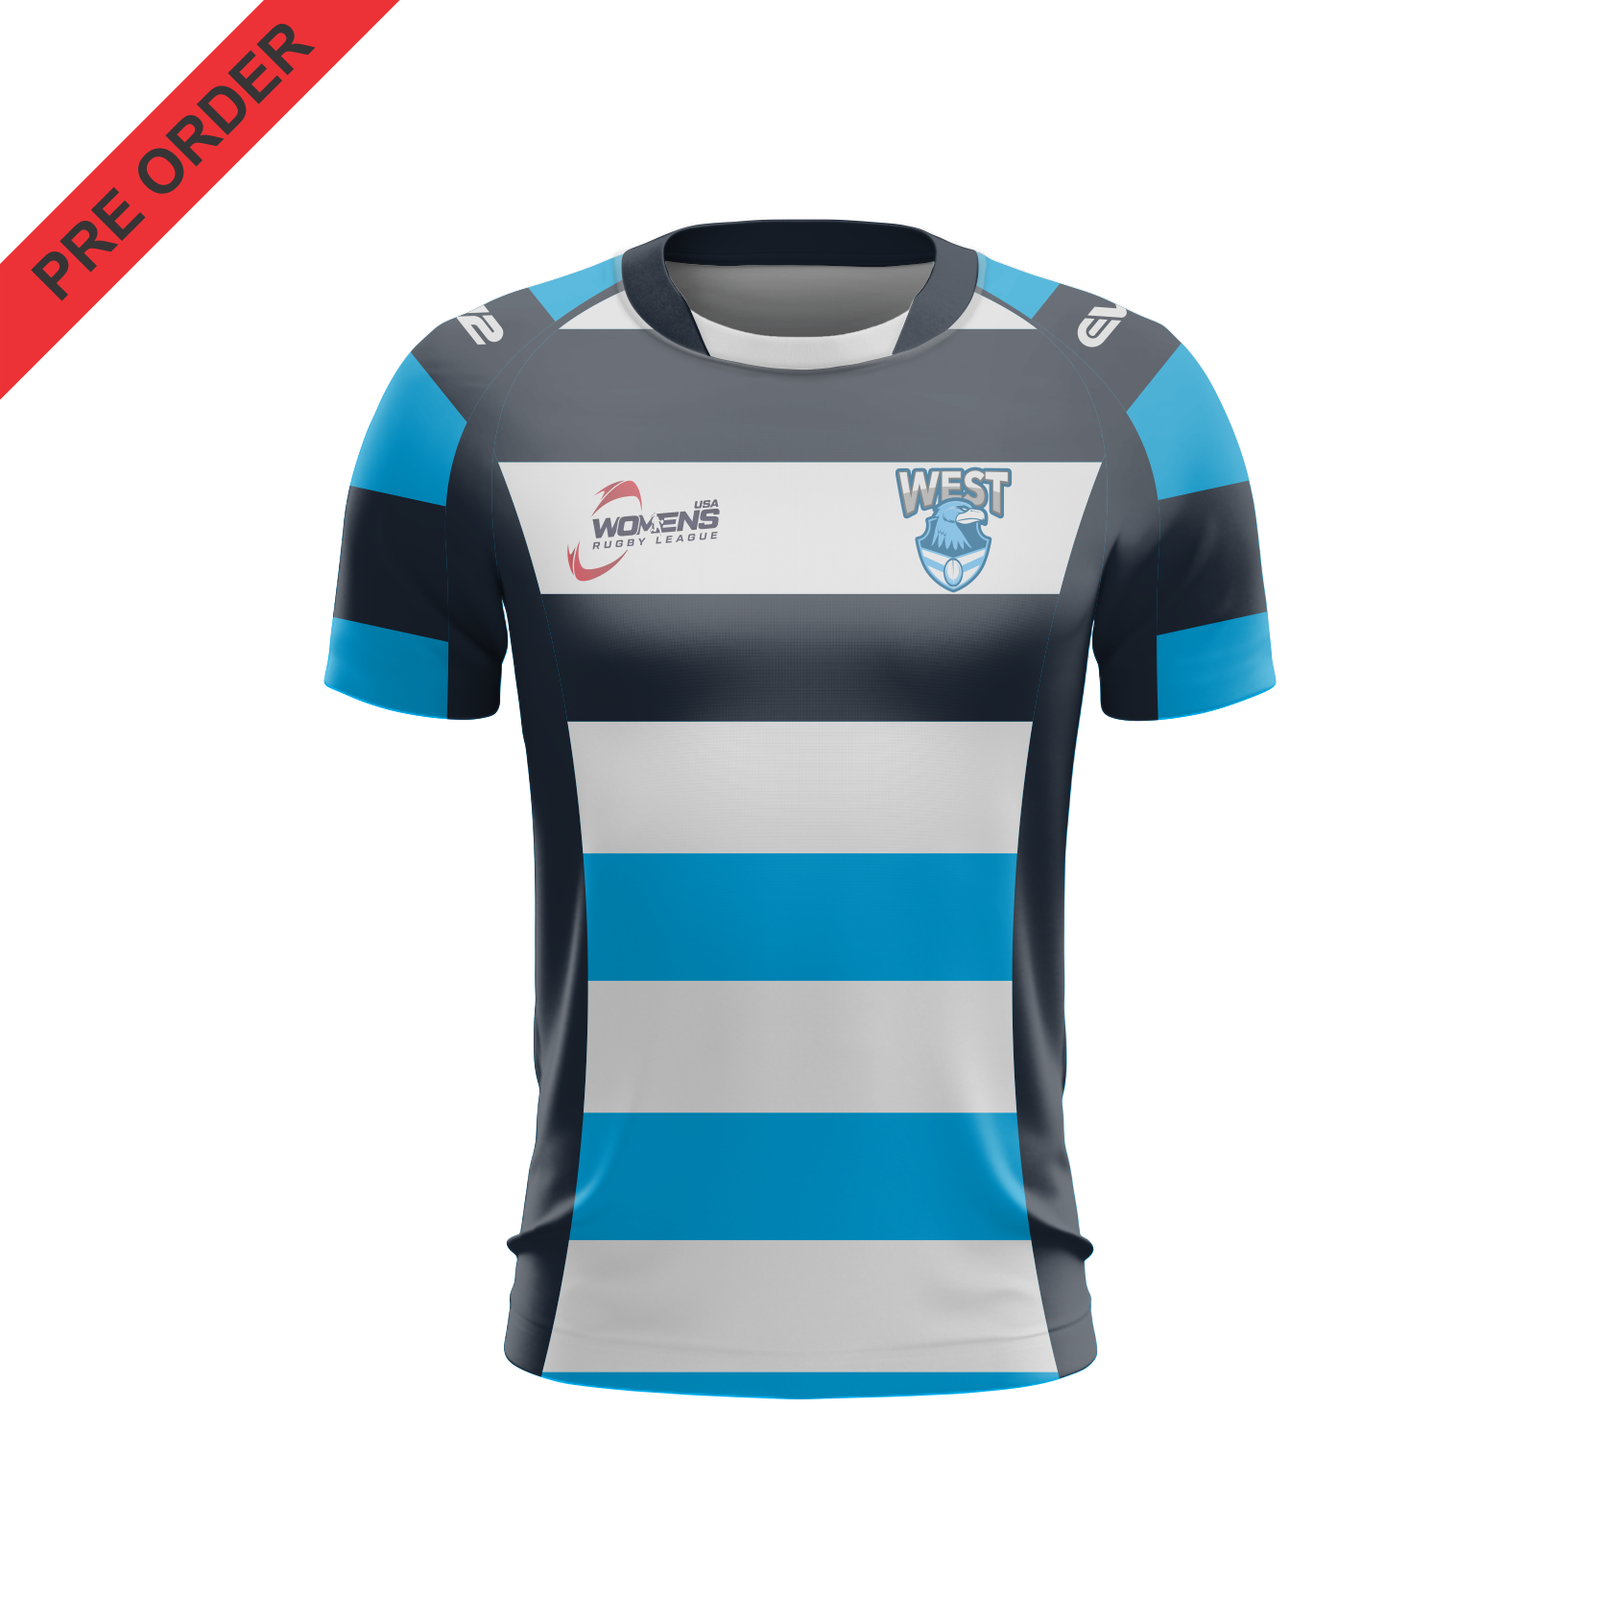 Wests Rugby League - Nines Jersey